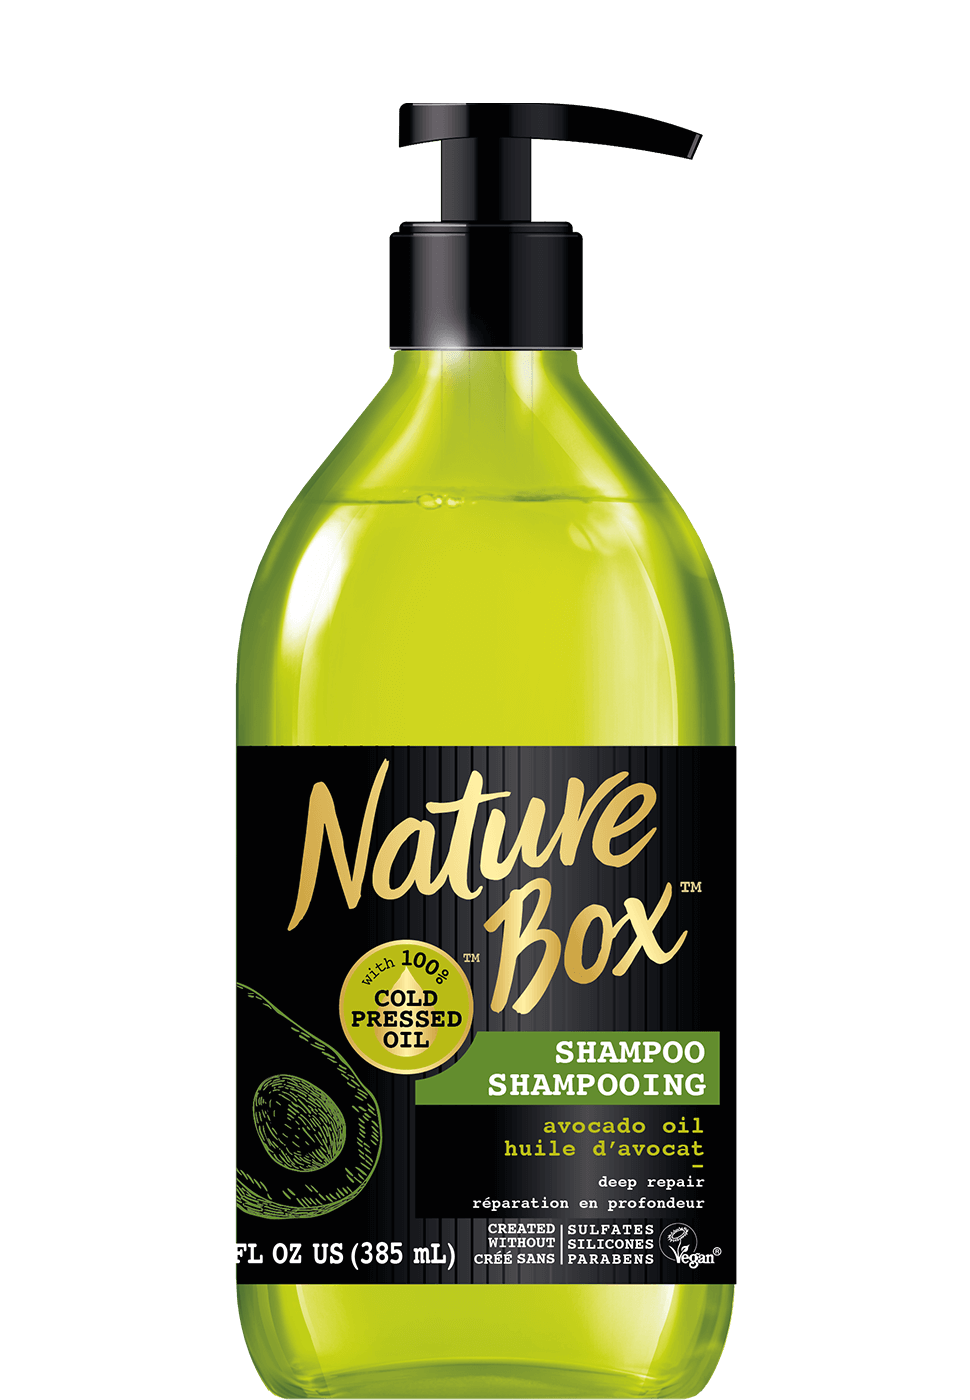 naturebox_ca_en_avocado_shampoo_970x1400